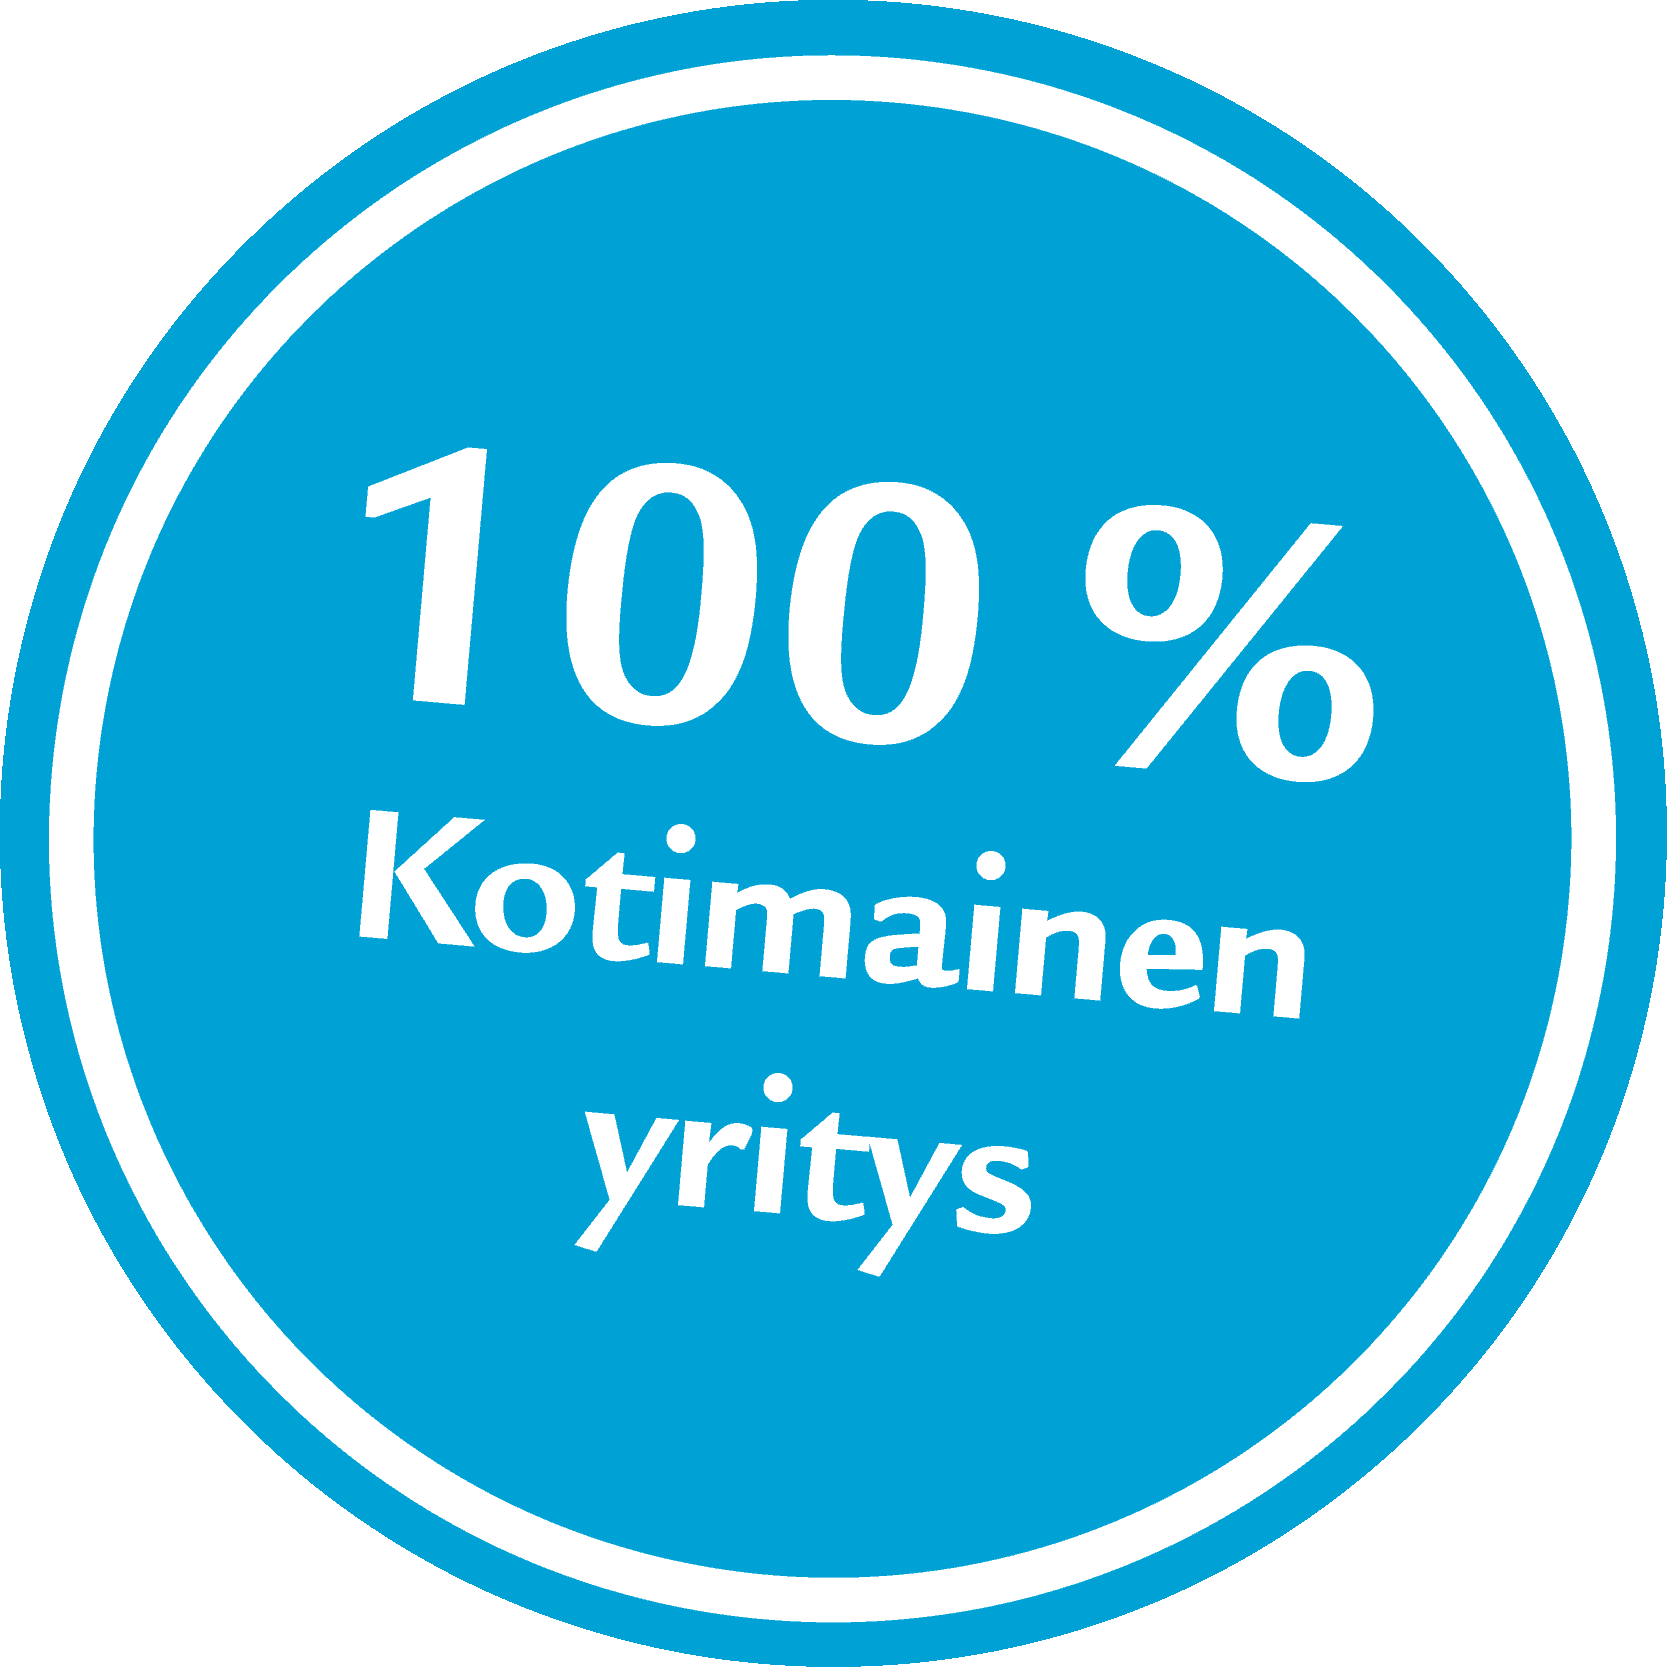 100% kotimainen